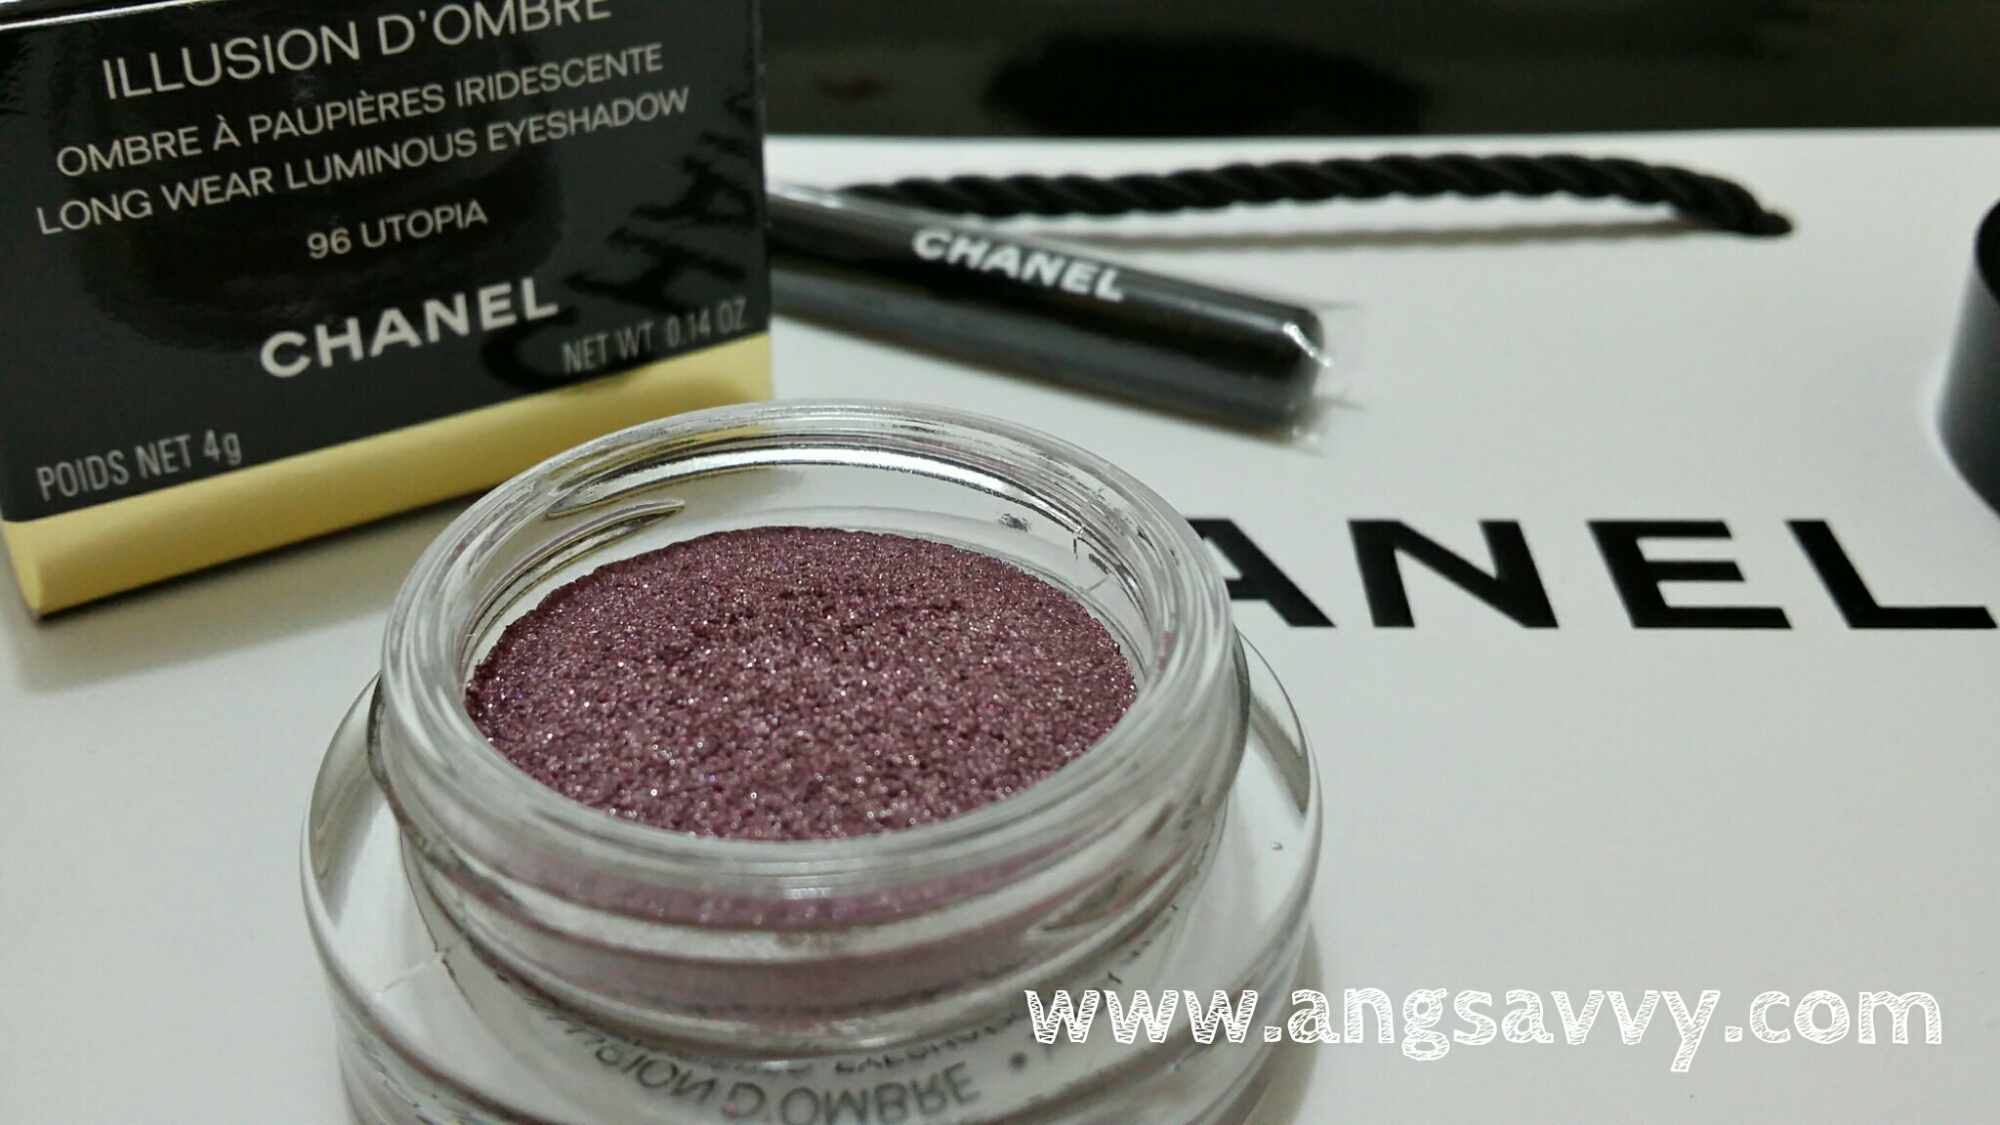 chanel, illusion, d'ombre, long wear, luminous, eyeshadow, 96, utopia